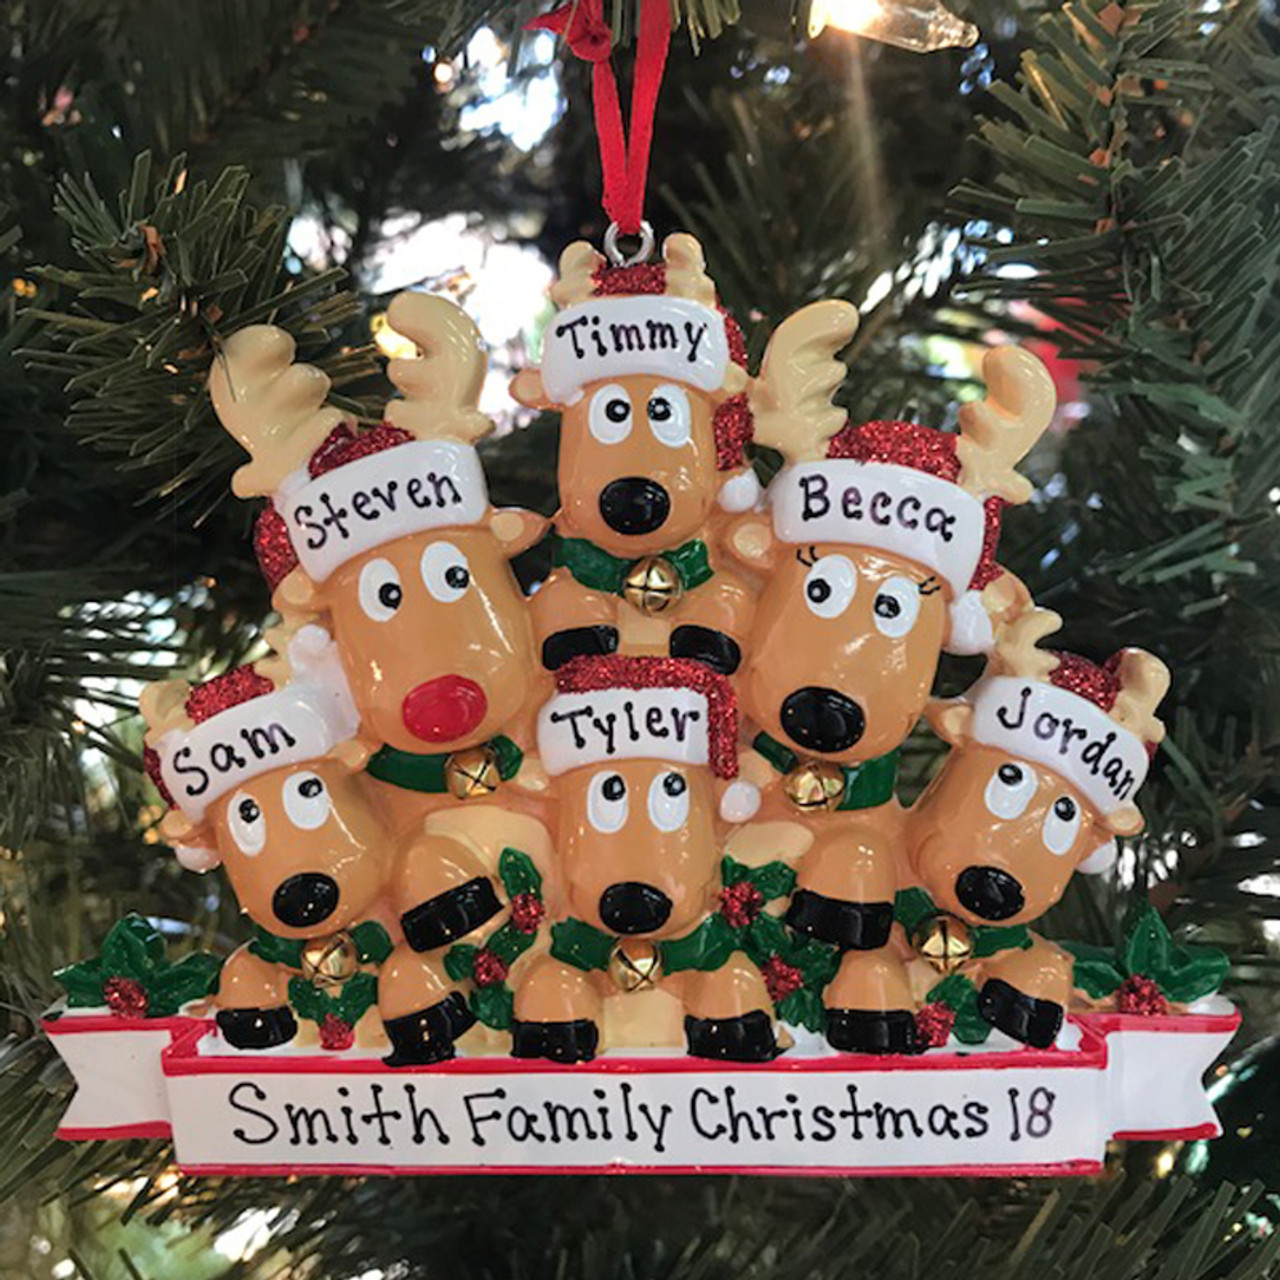 Reindeer Family Of 6 Personalized Christmas Ornament Christmas Ornament Unique Christmas Ornament Personalized Christmas Ornament